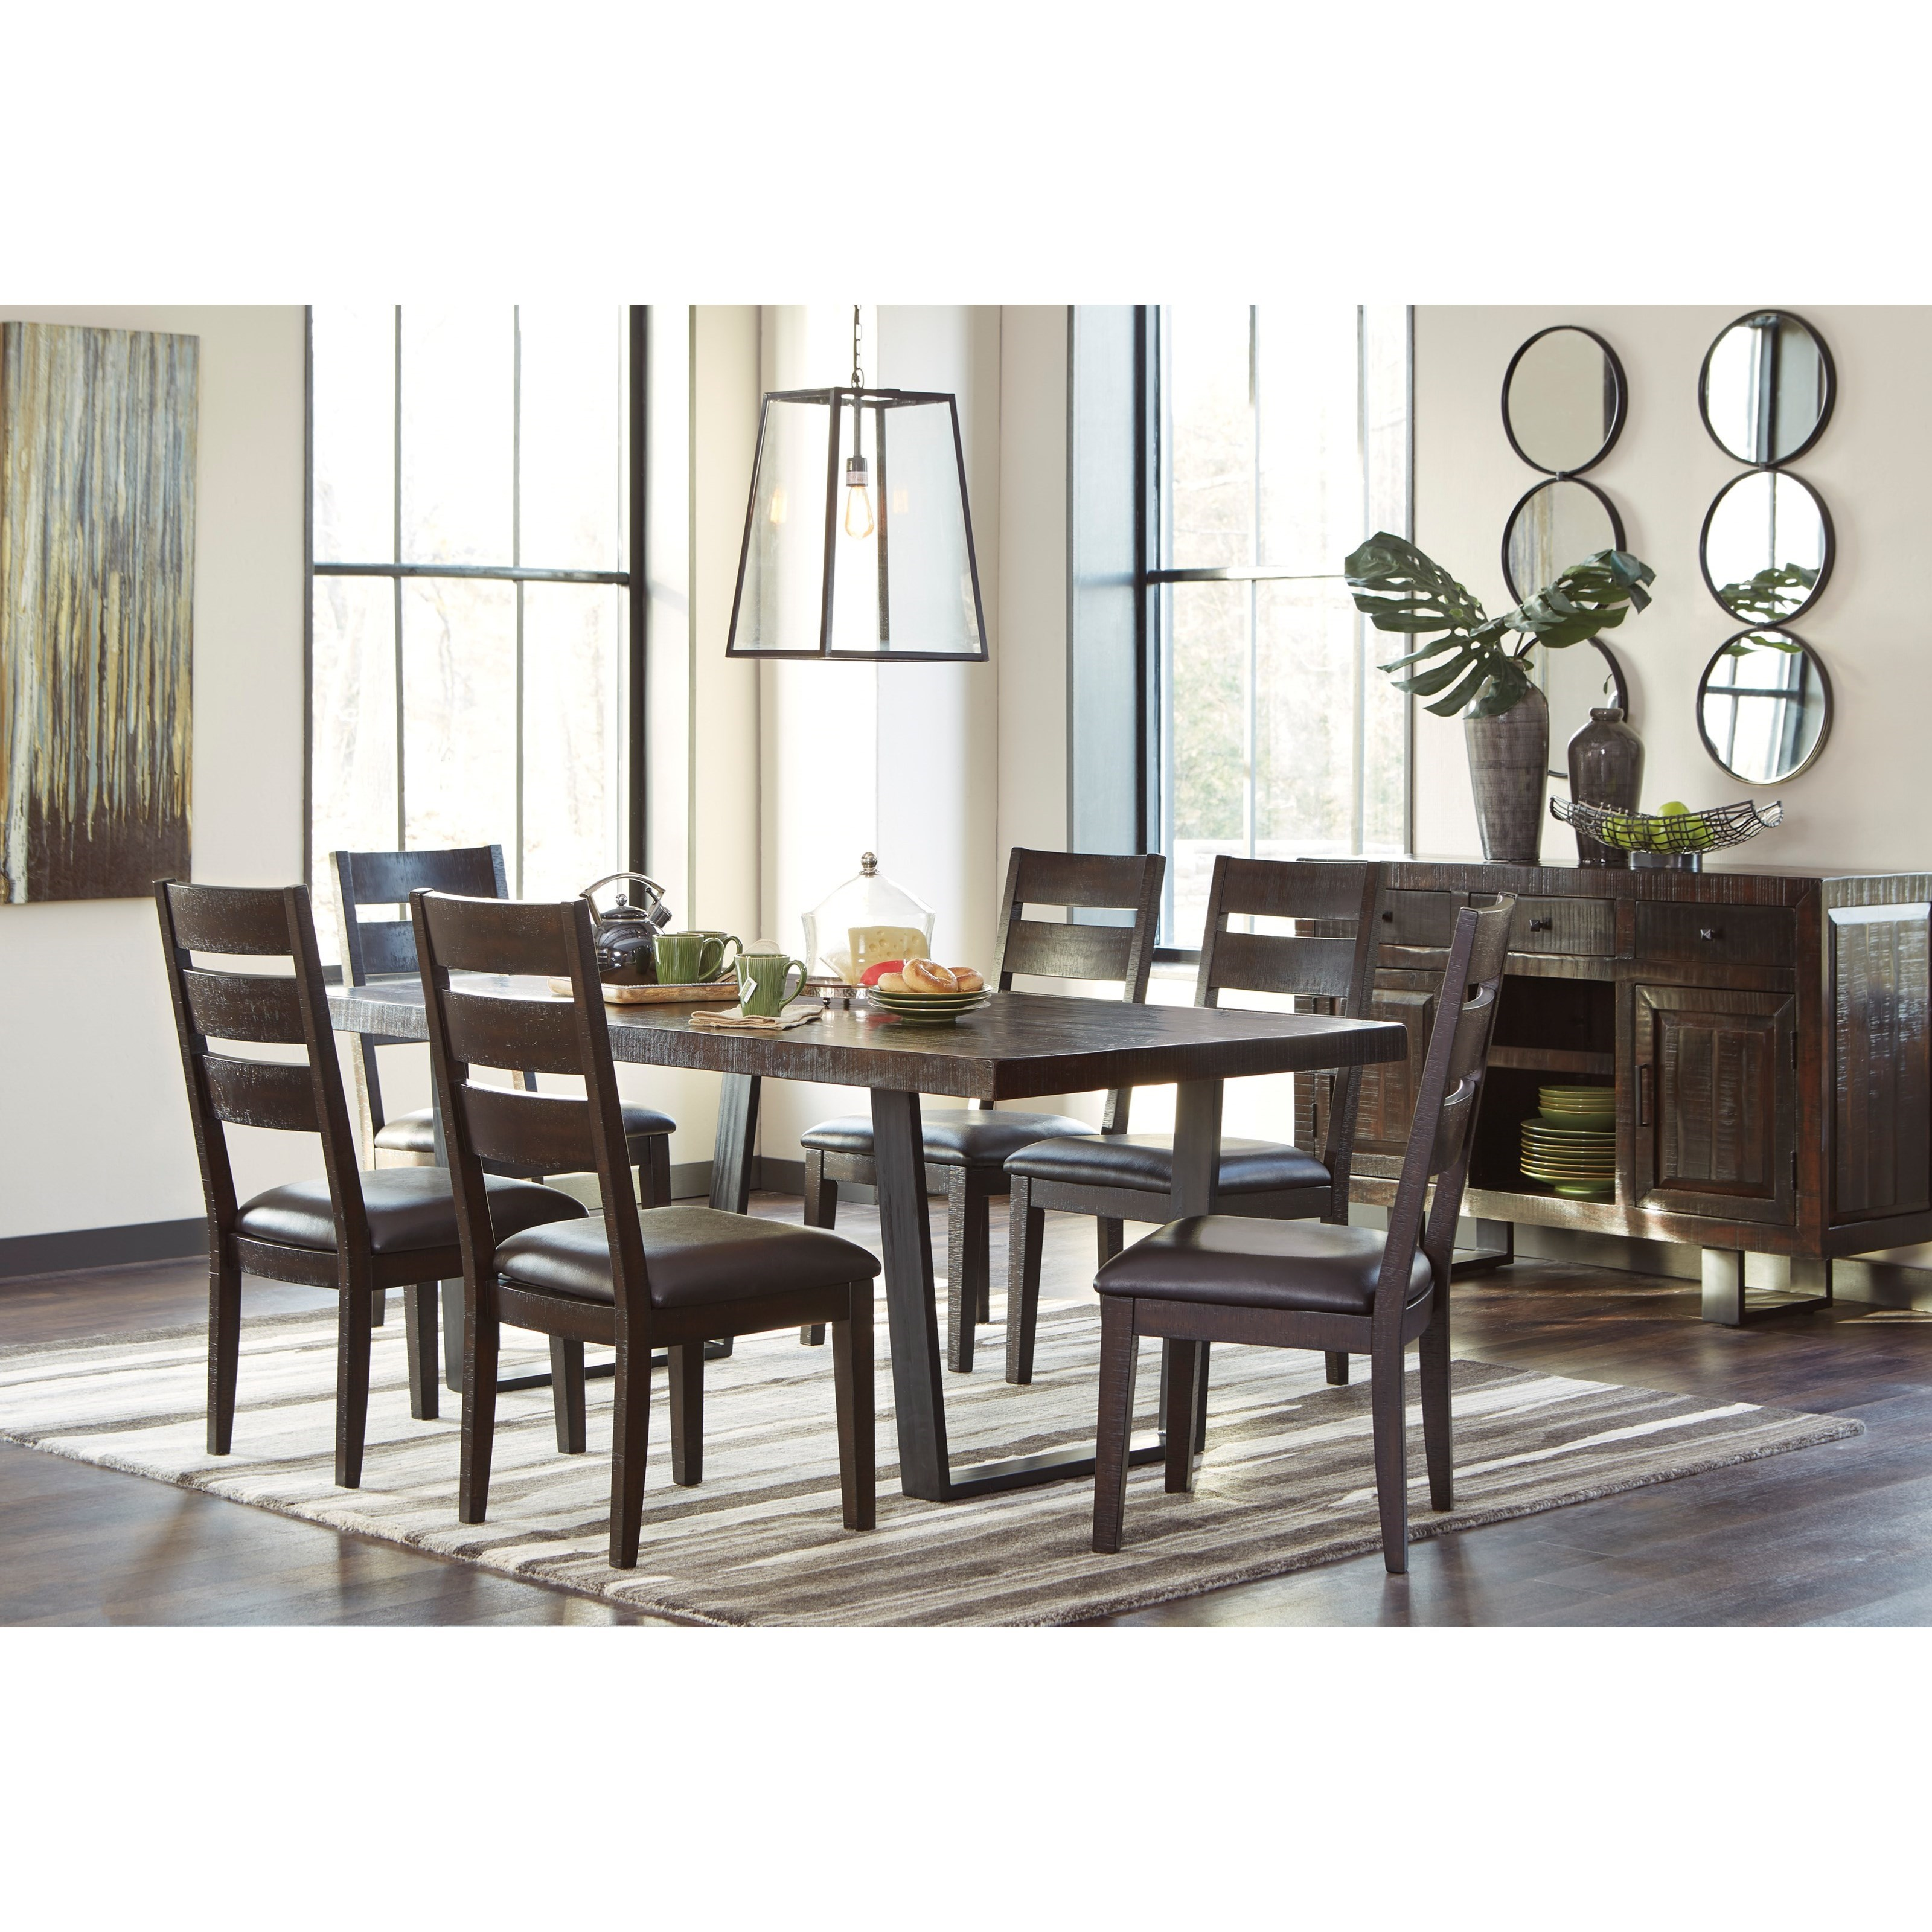 Signature design by ashley parlone casual dining room for Casual dining room furniture